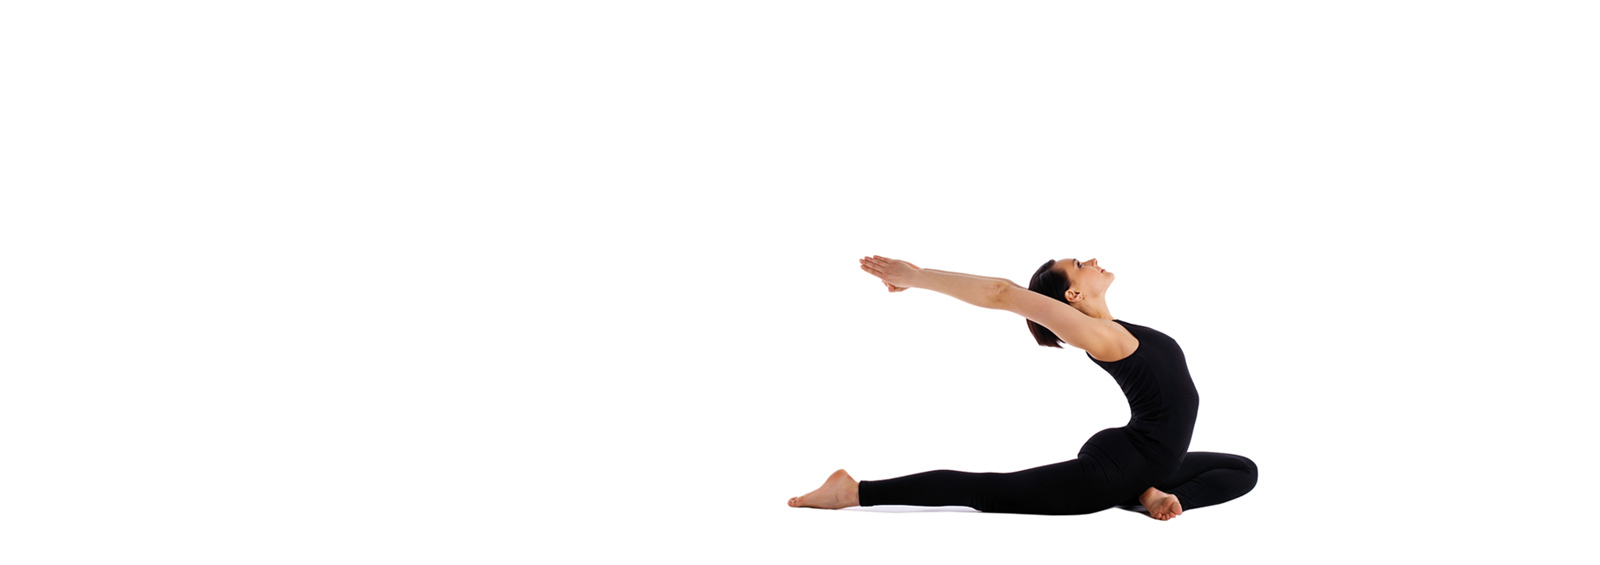 What is the point of yoga? 2